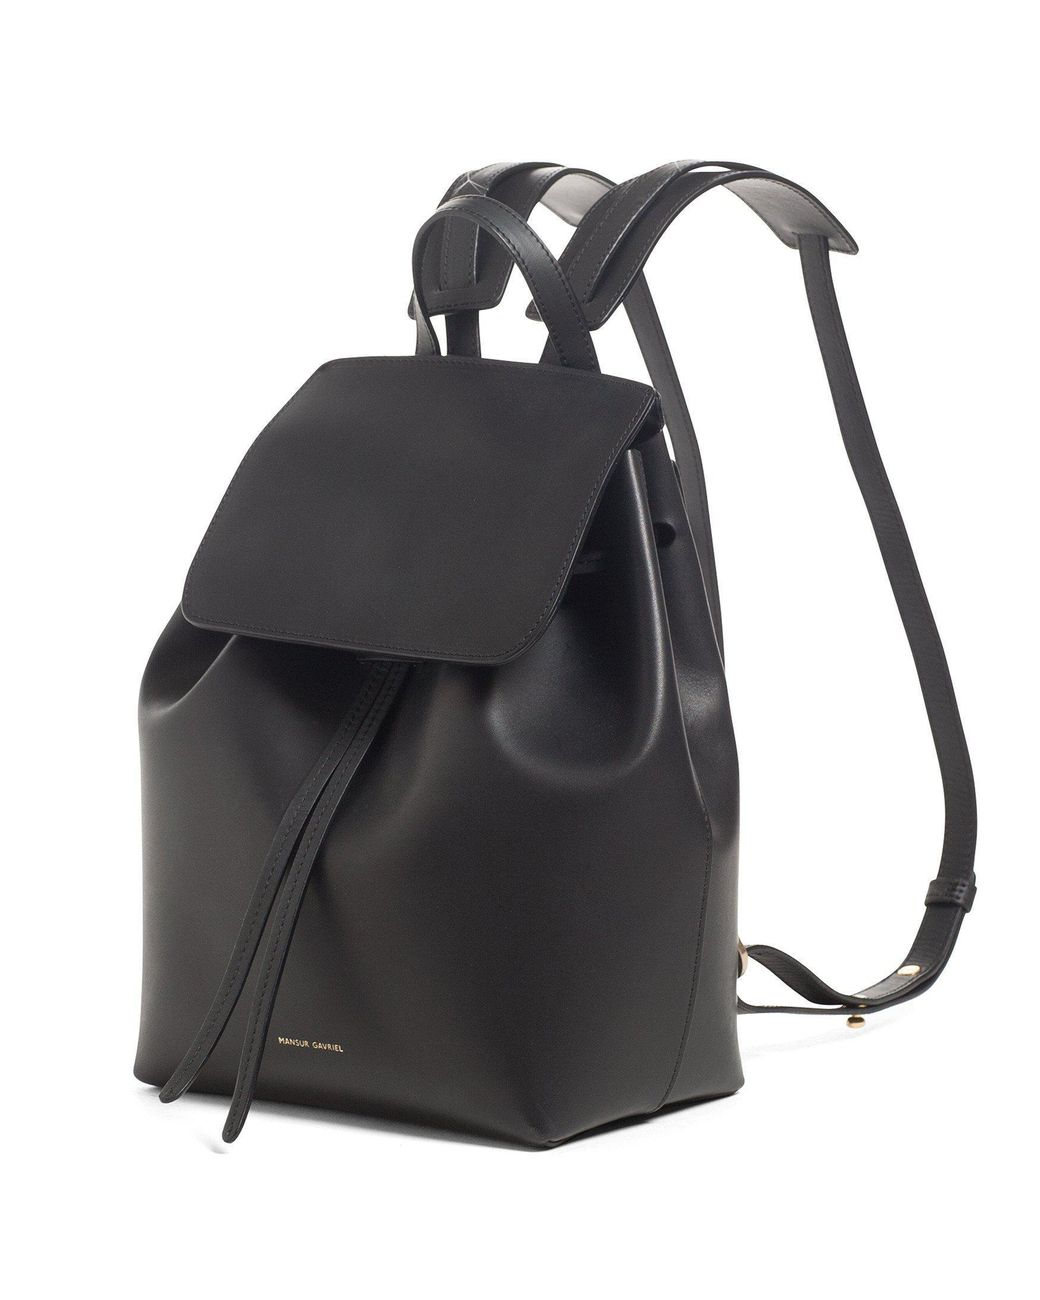 c682db31825 Women's Black Mini Backpack - Ballerina